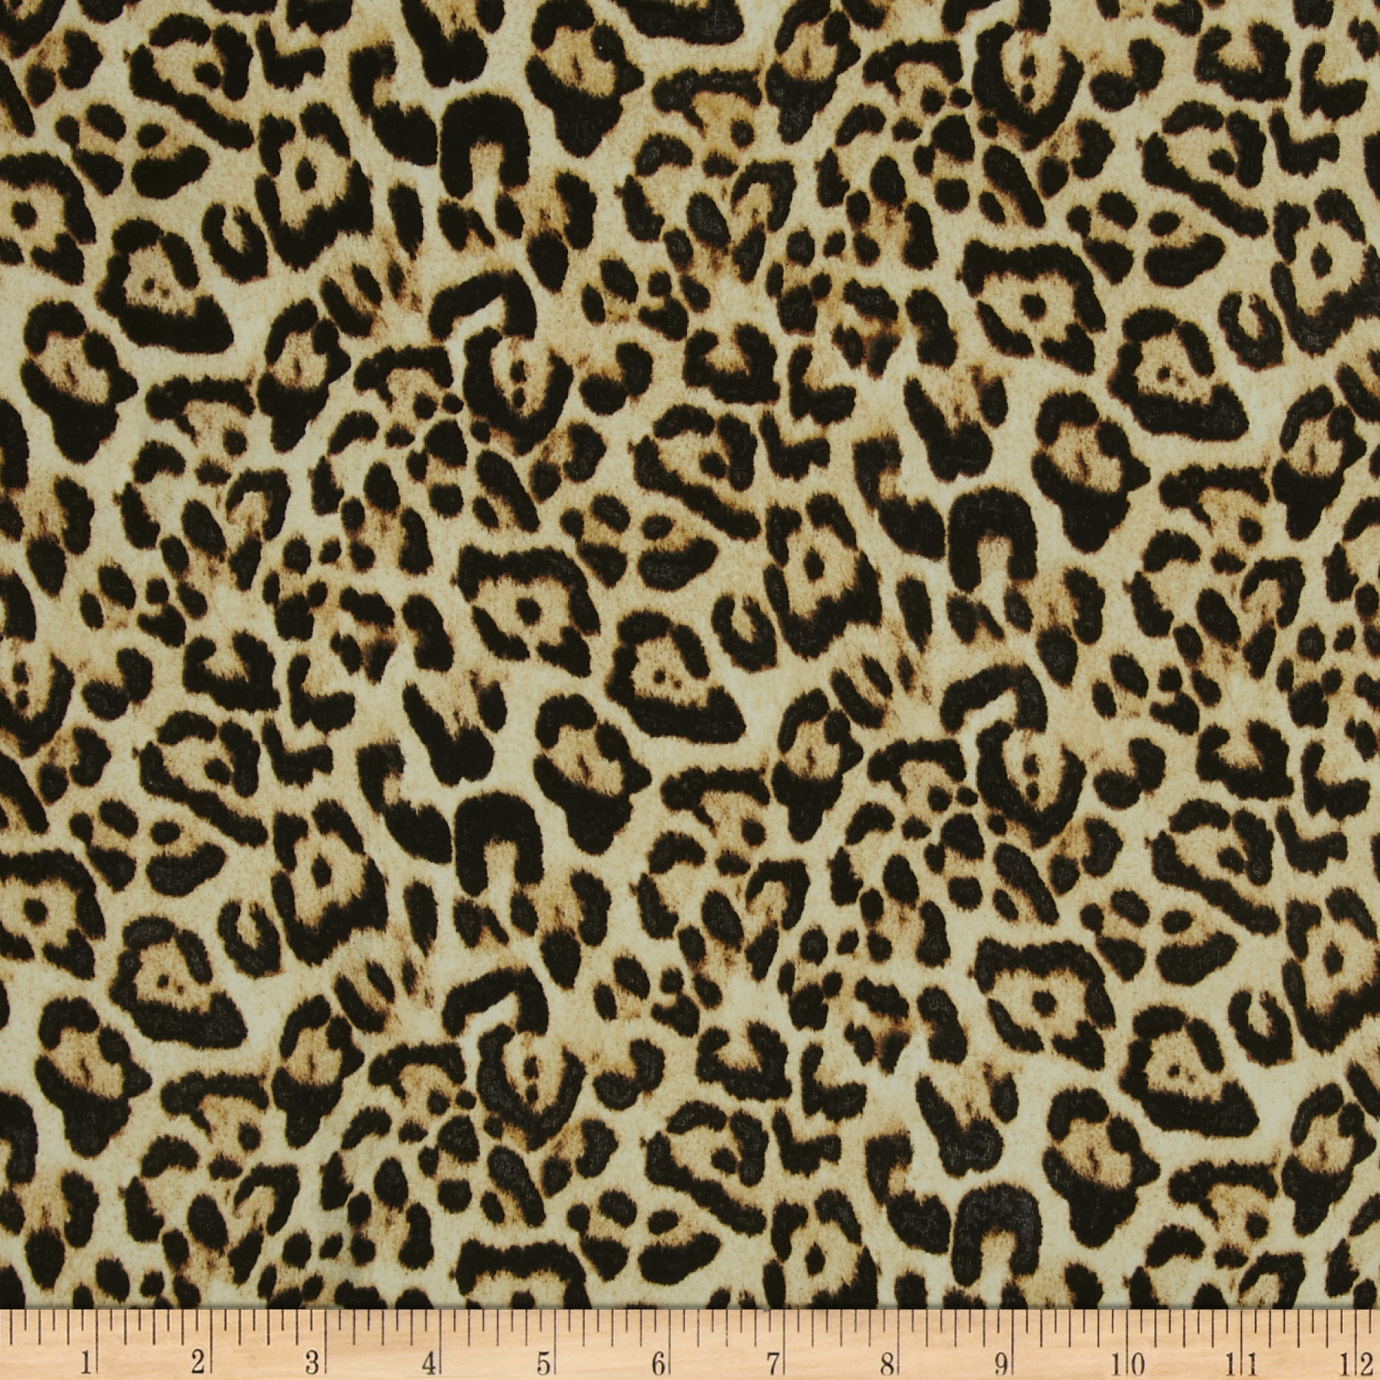 Isabella Satin Leopard Gold/Black Fabric